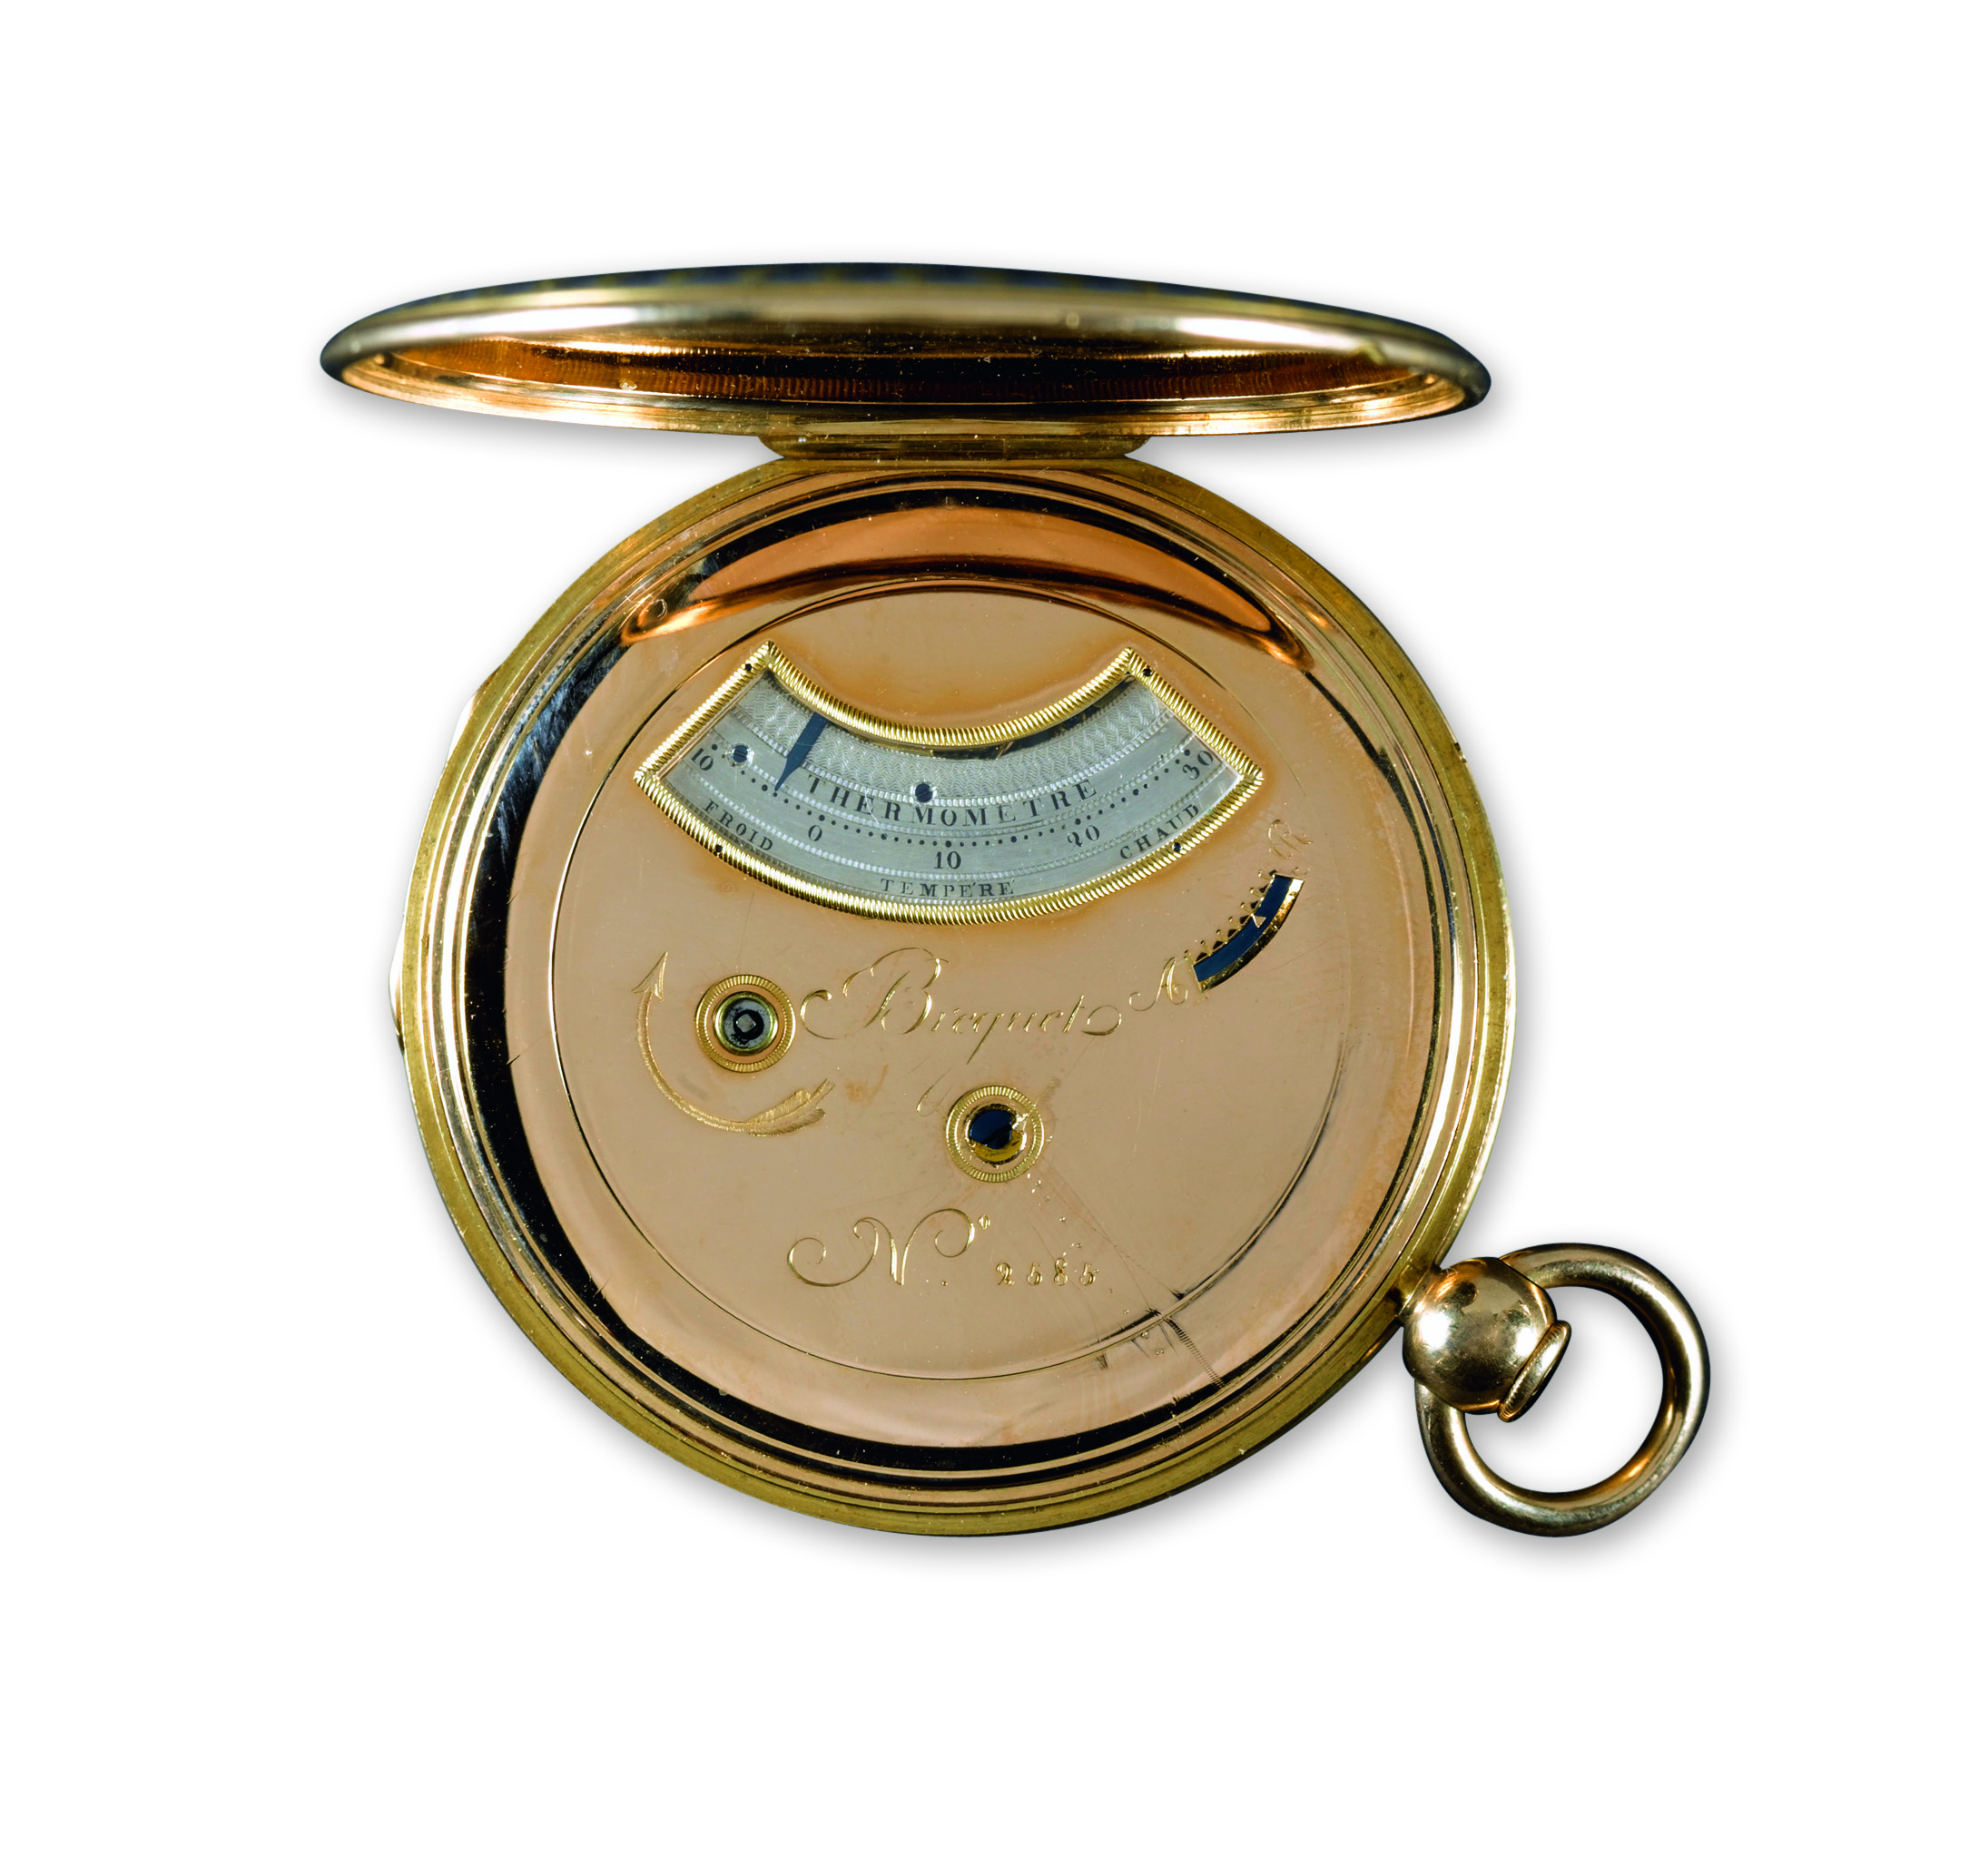 Breguet No. 2585 Louvre Collection